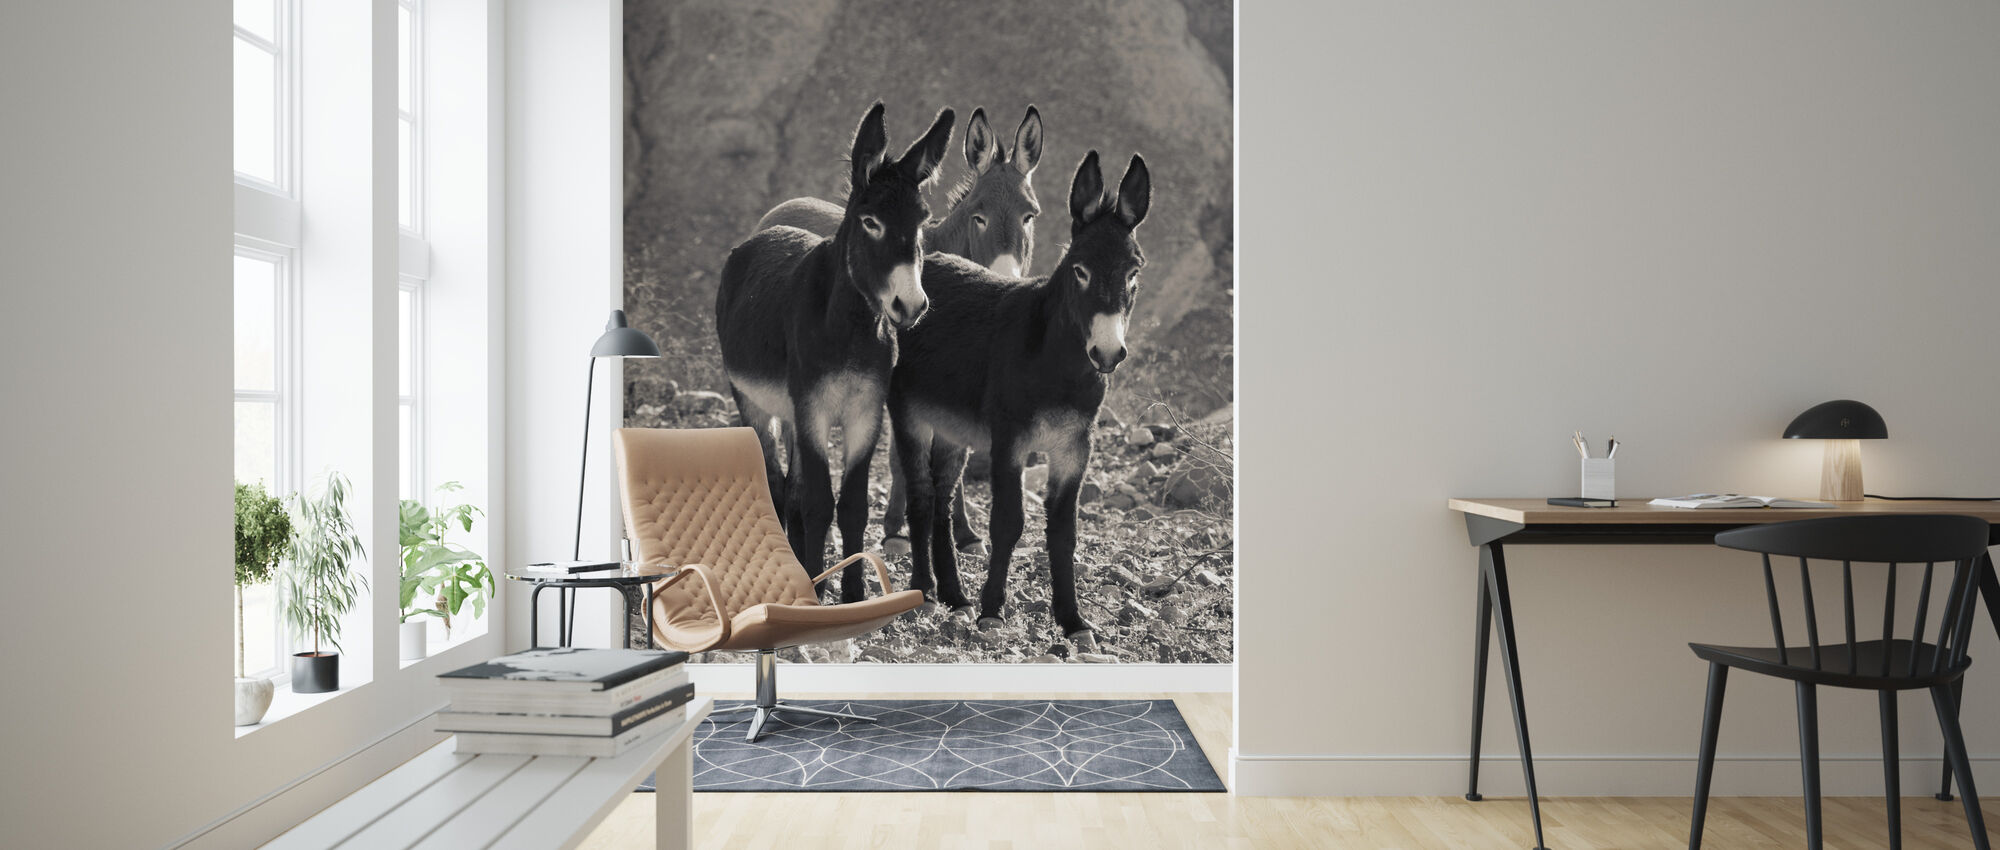 Wild Burros in a Canyon, Death Valley National Park - Wallpaper - Living Room